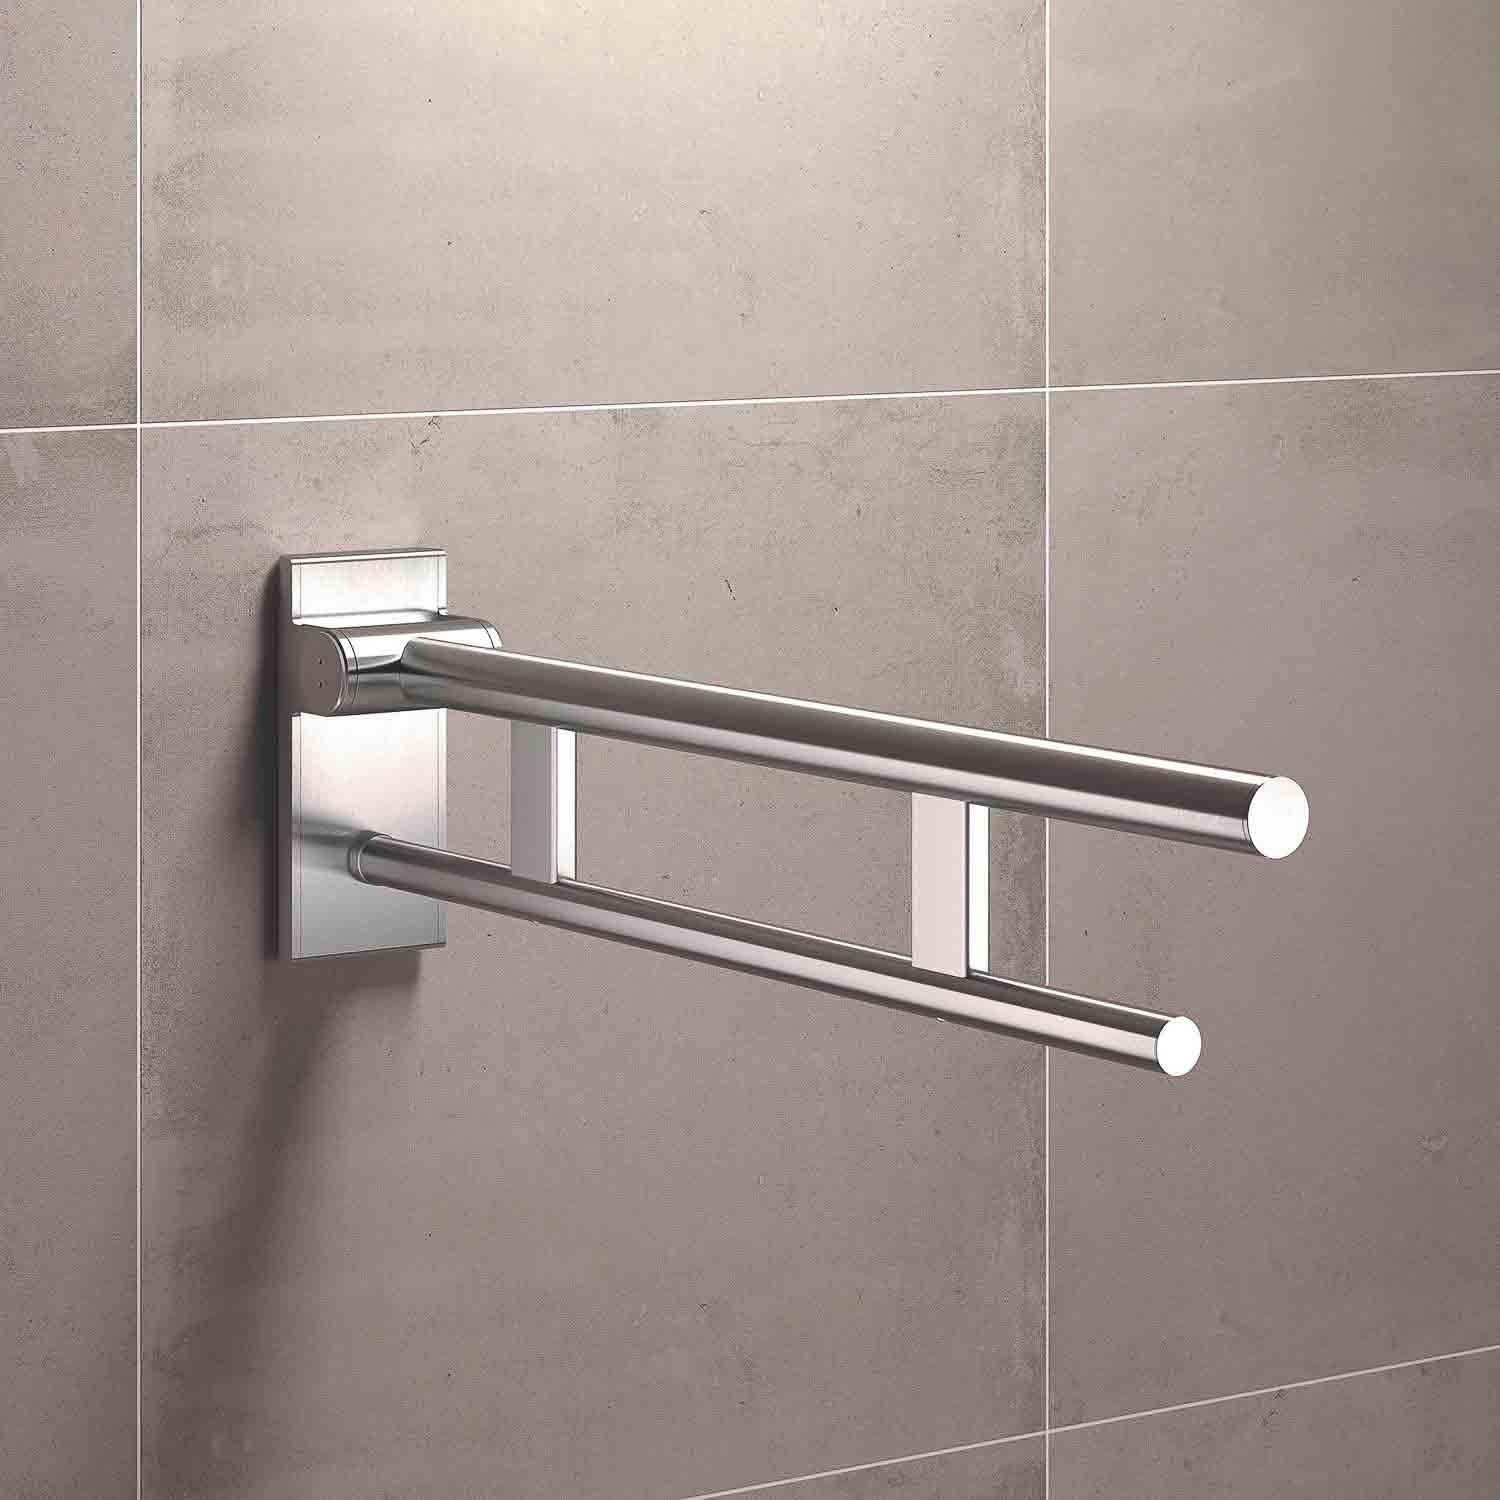 850mm Freestyle Hinged Grab Rail with a satin steel finish lifestyle image